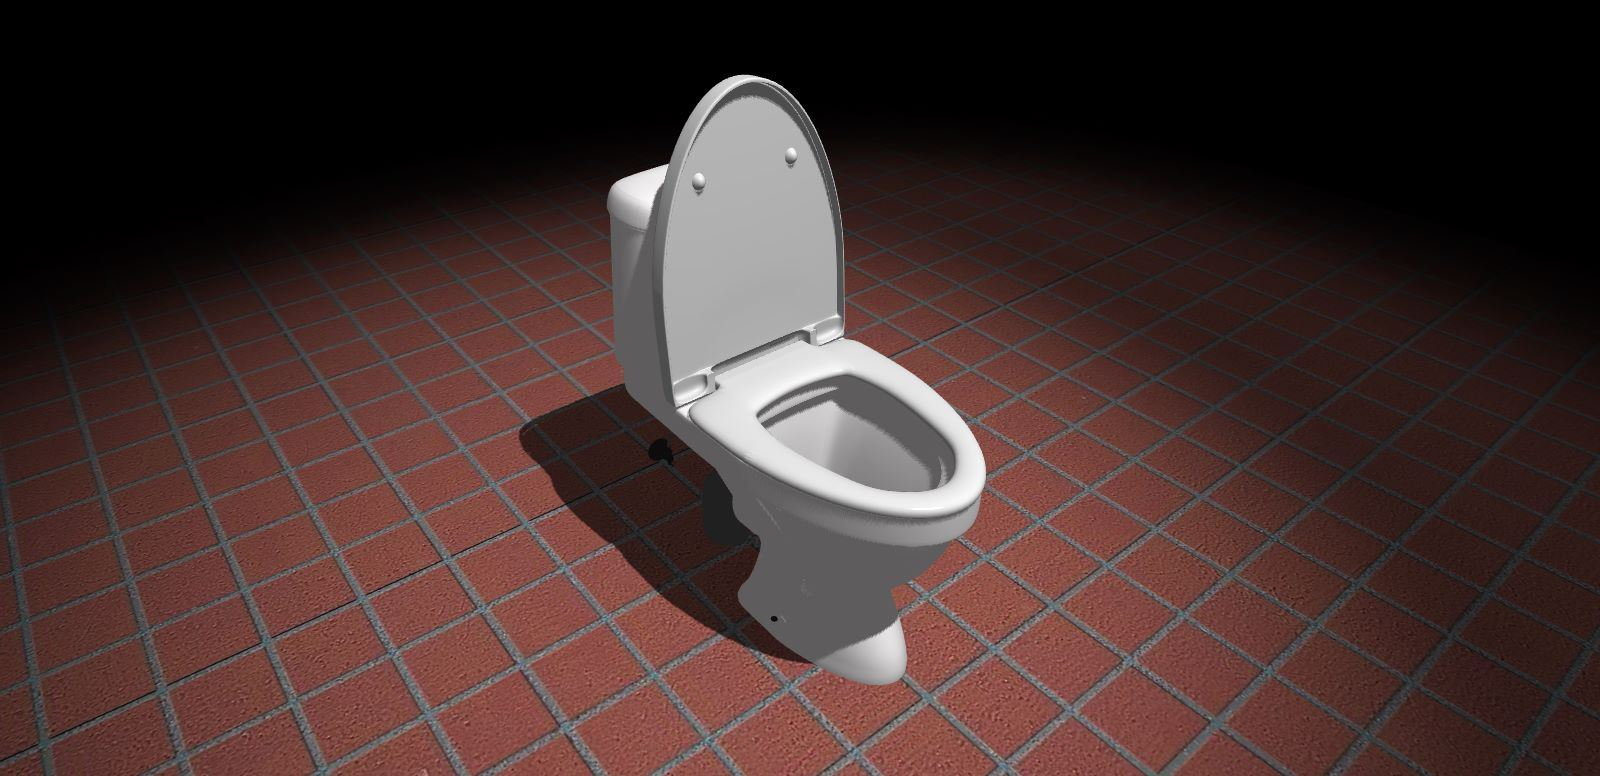 Toilet-Lavatory-Loo | ArtisGL 3D Publisher - Online, Real-Time and ...